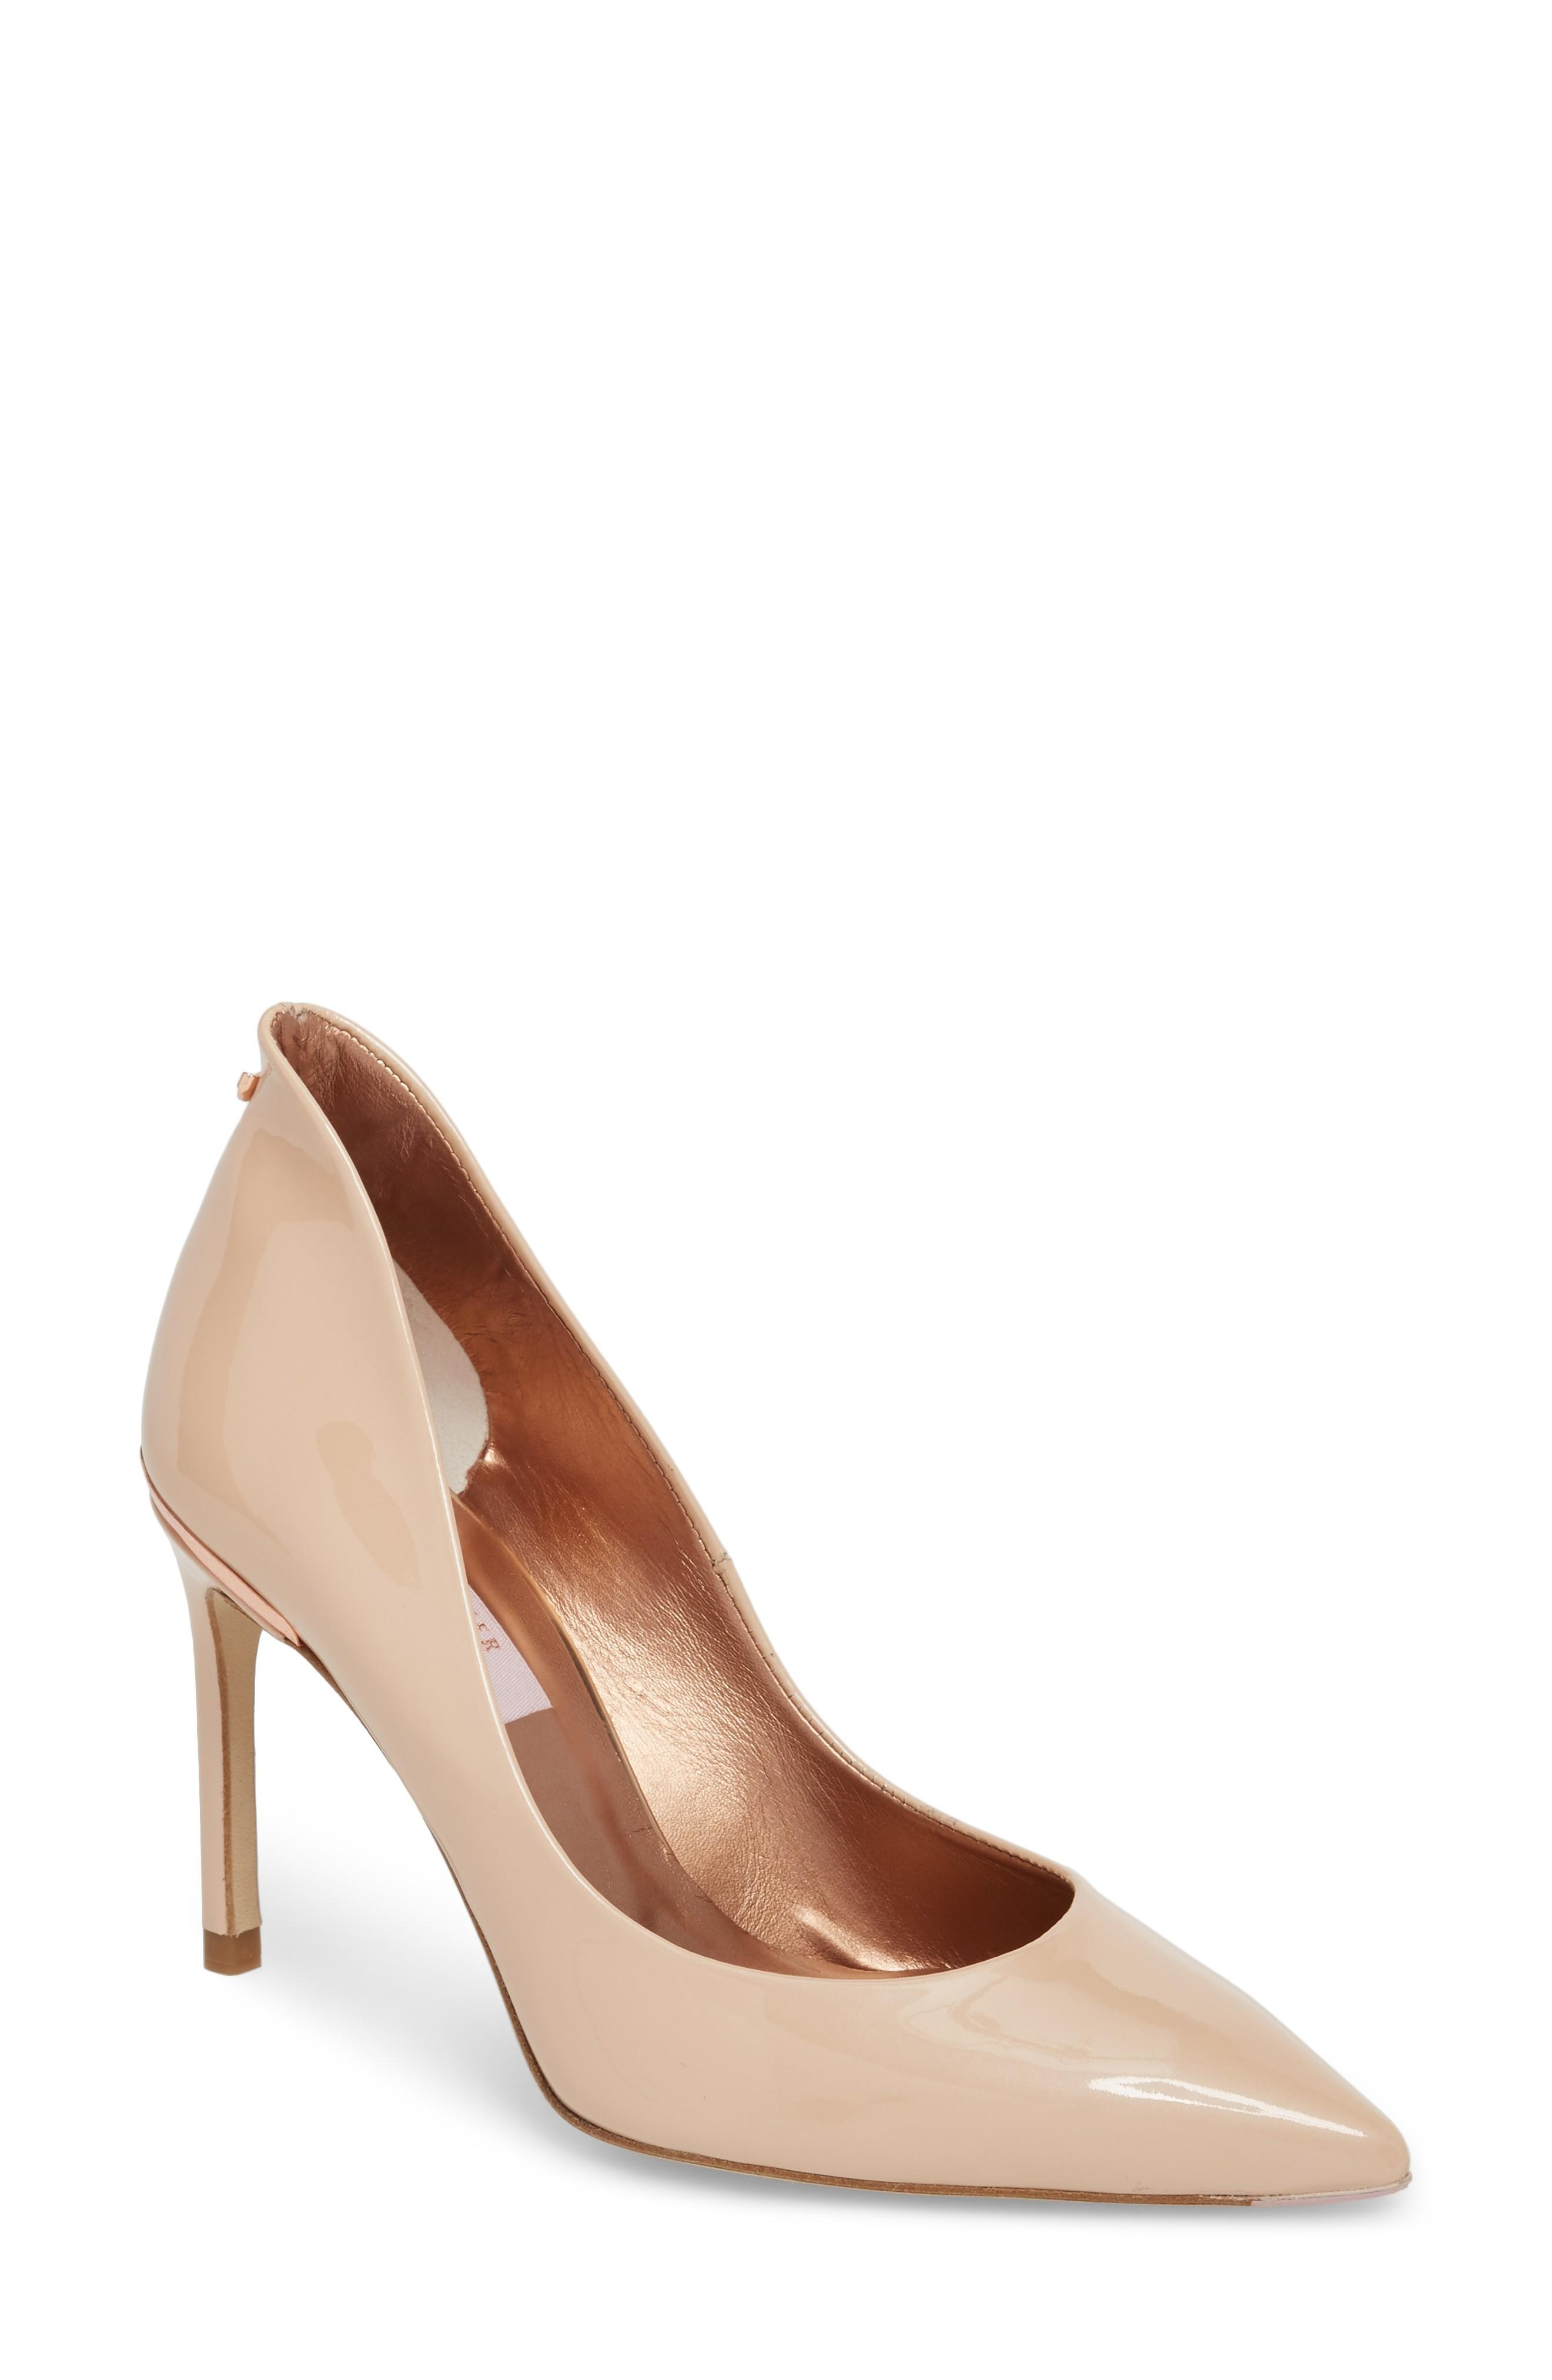 Ted Baker Savio Pump In Nude Patent Leather